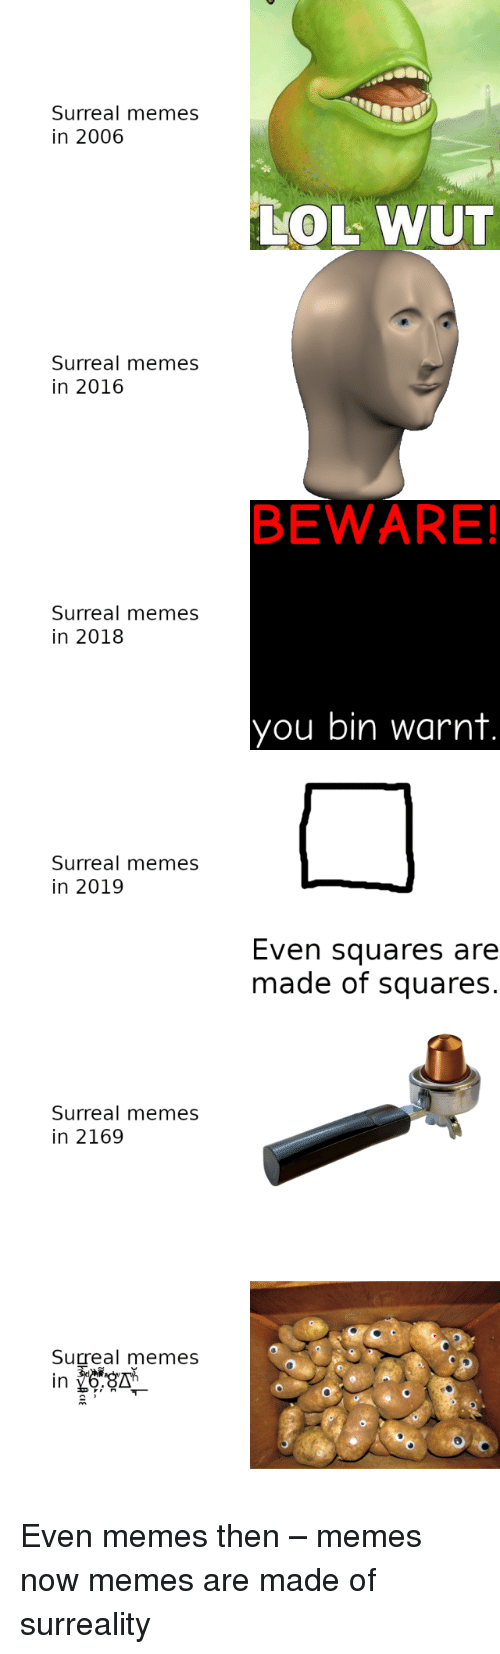 Lol, Memes, and You: Surreal memes  in 2006  LOL WUT  Surreal memes  in 2016  BEWARE!  Surreal memes  in 2018  you bin warnt  Surreal memes  in 2019  Even squares are  made of squares.  Surreal memes  in 2169  Surreal memes Even memes then – memes now memes are made of surreality